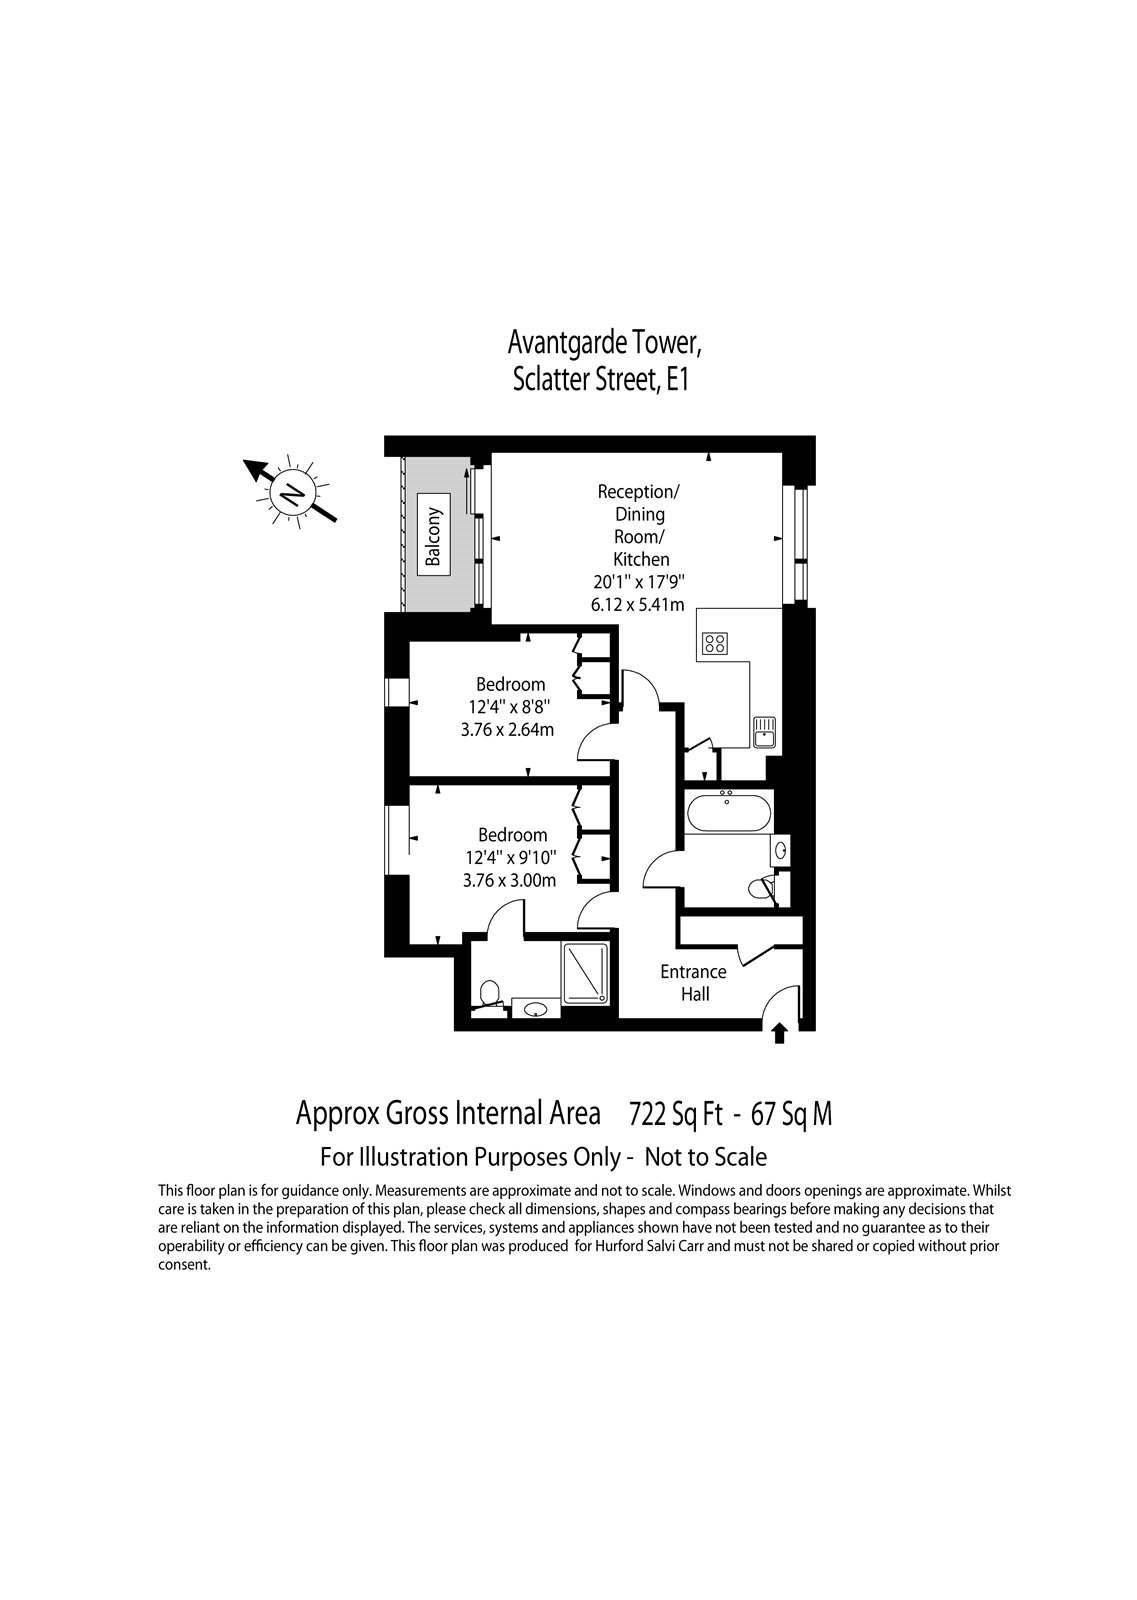 Avantgarde Tower, Sclatter Street, E1 floorplan